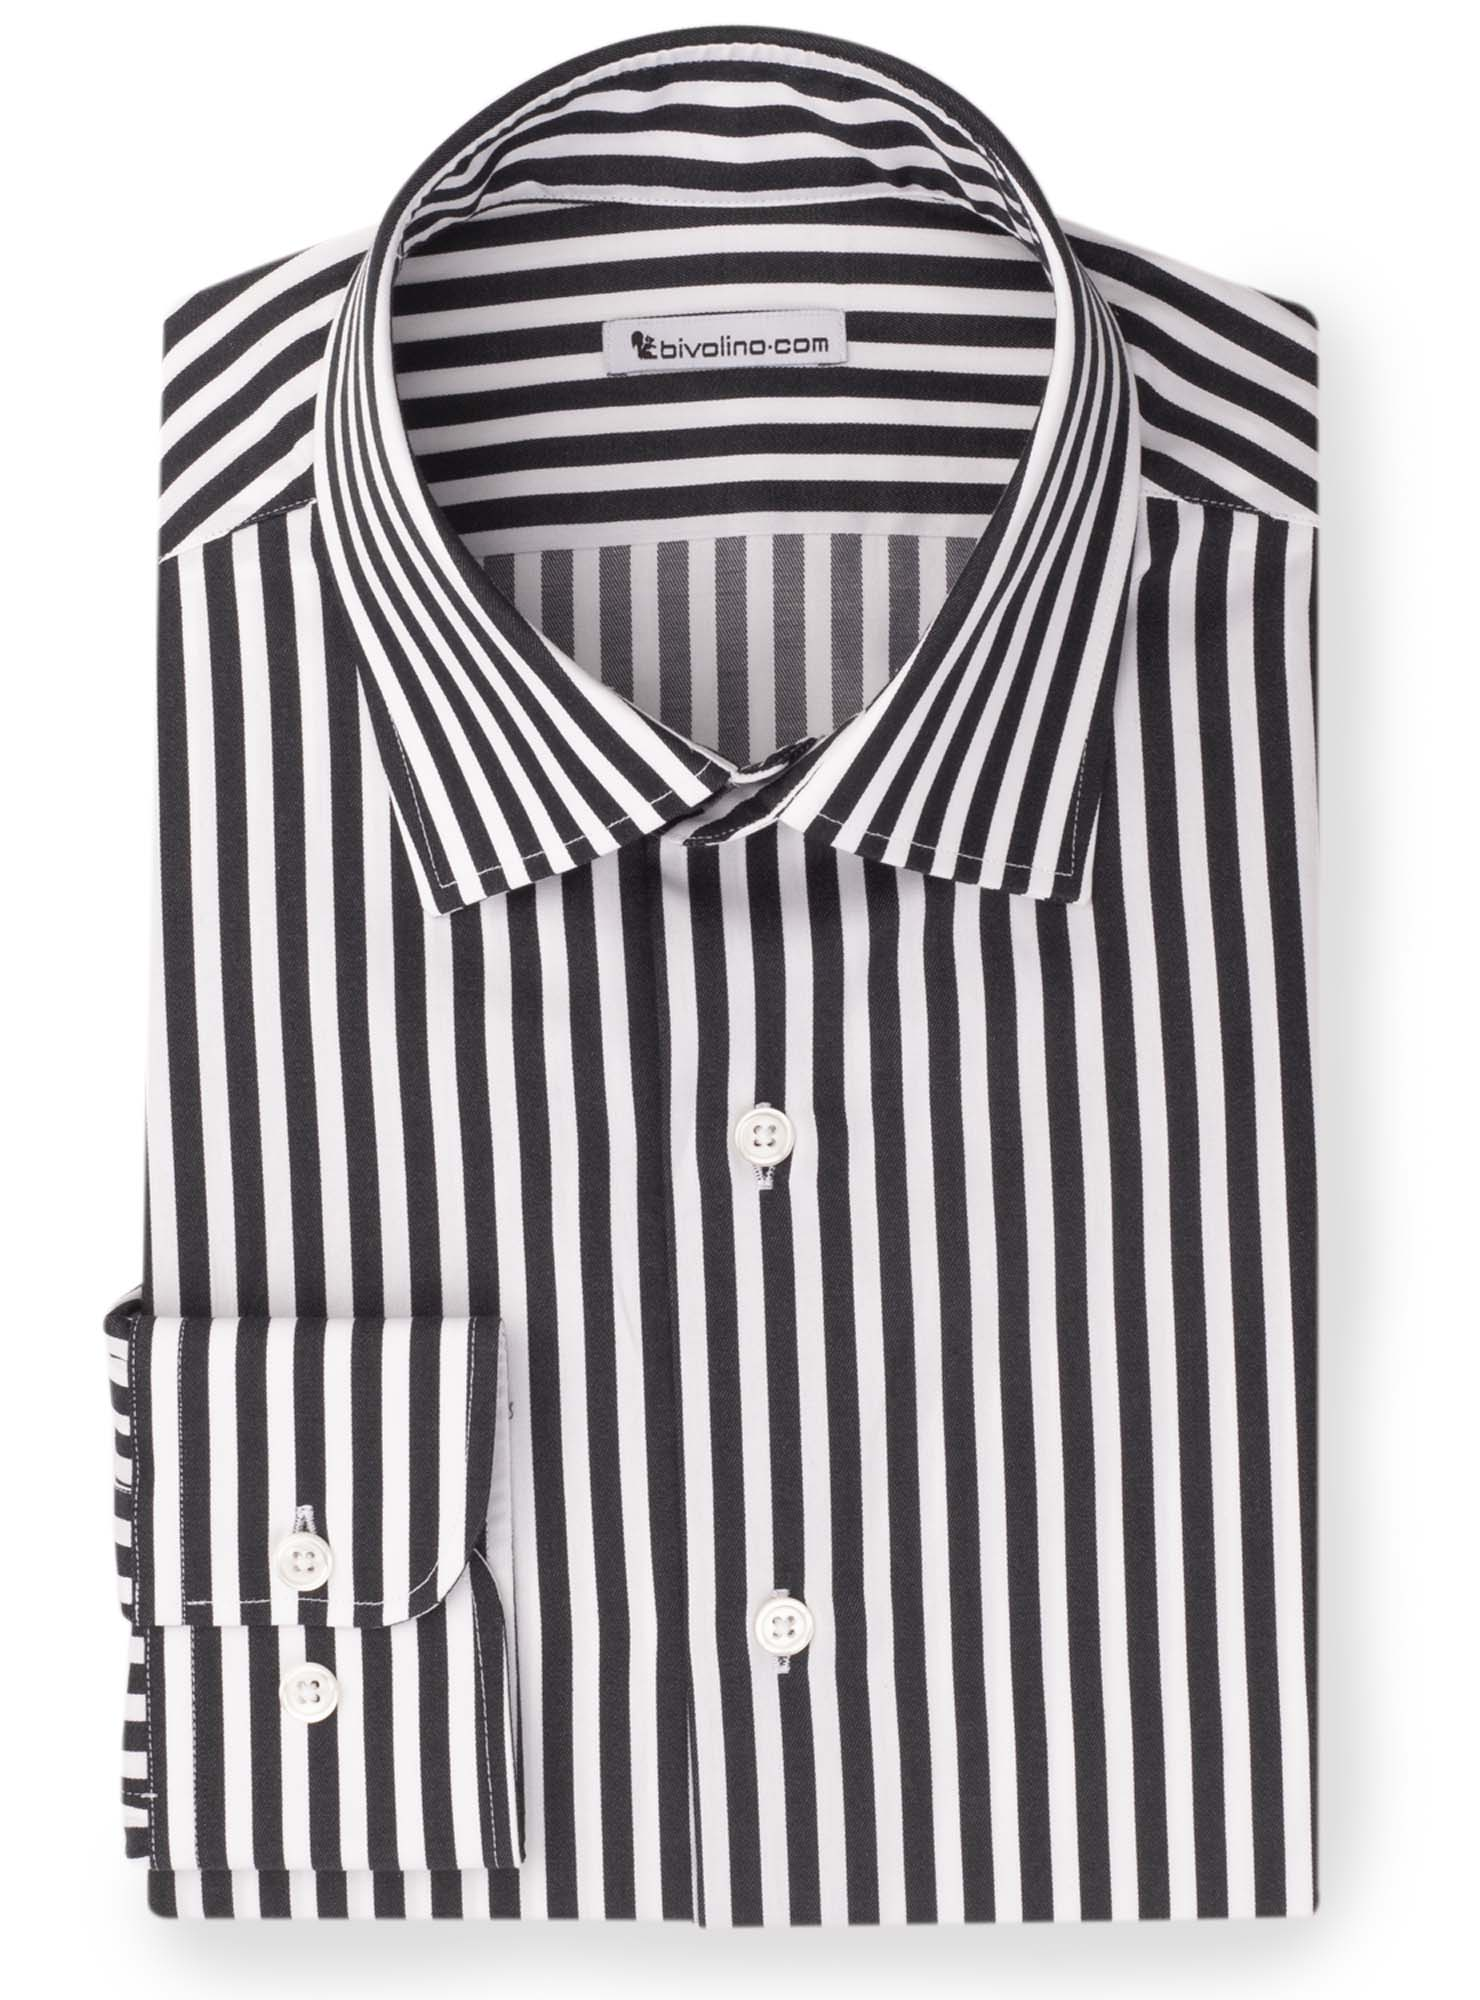 LUCOCINI -  Black striped shirt - Mage 5